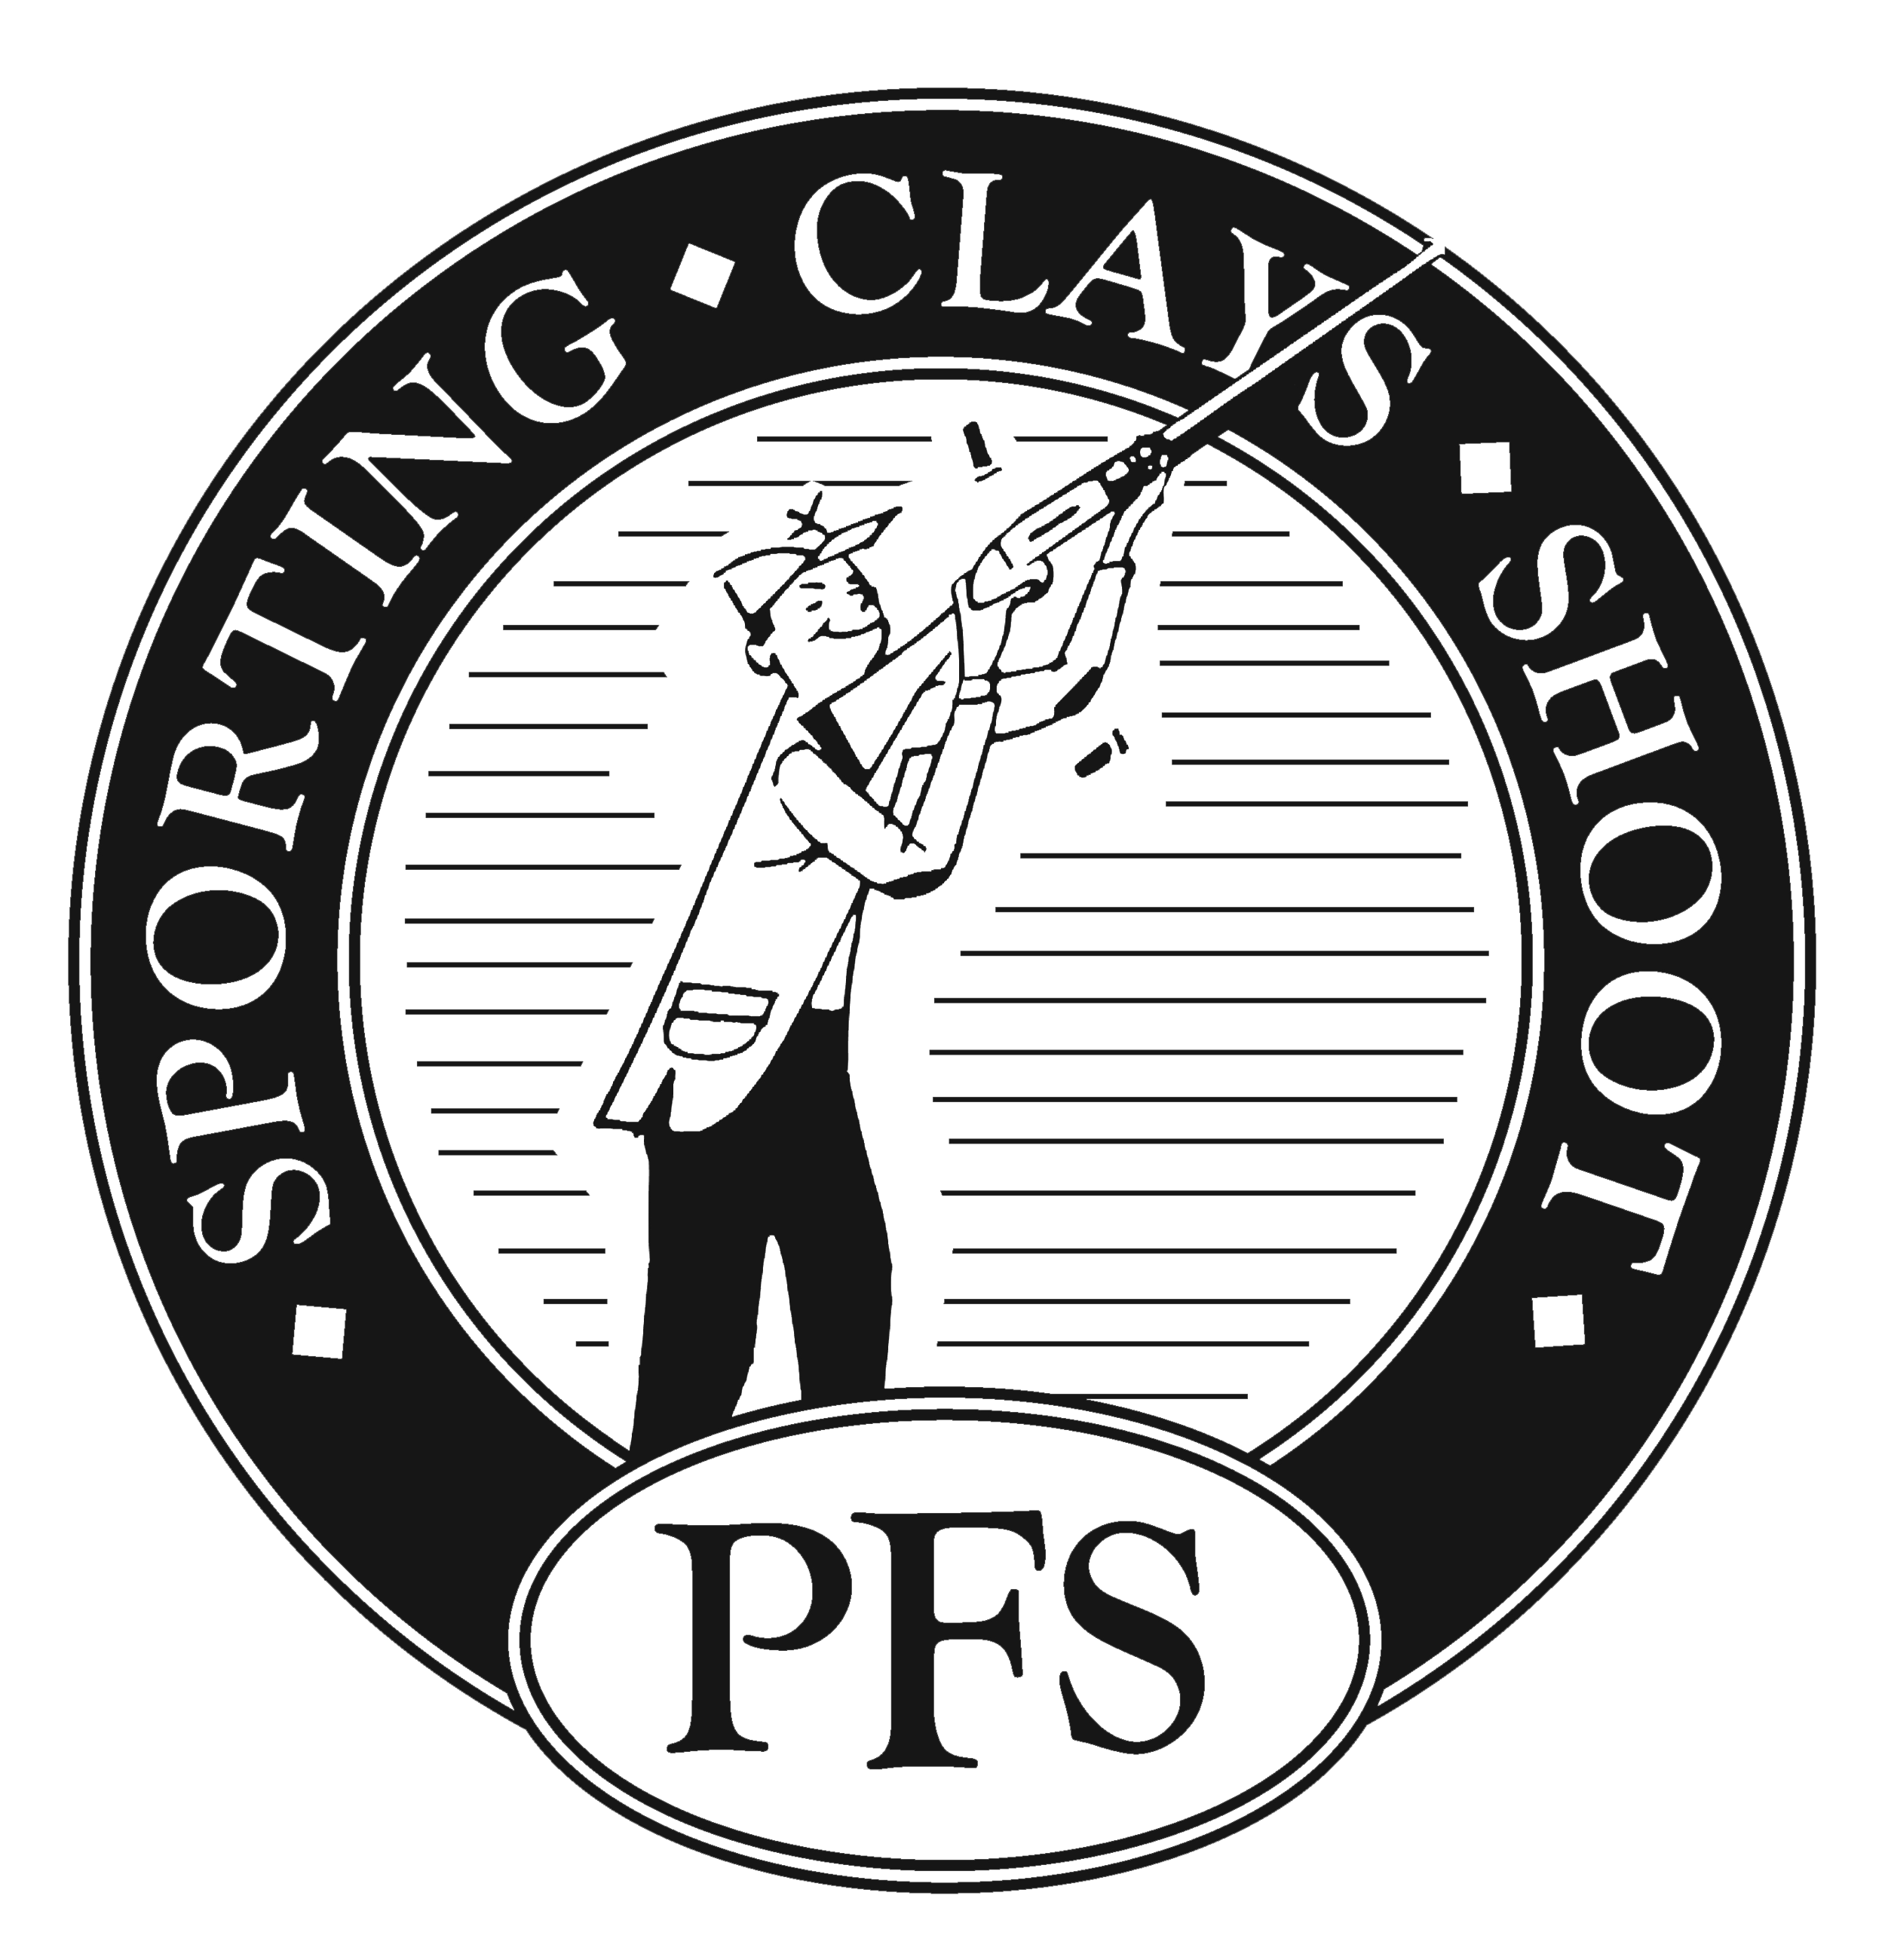 pfs clay shoot logo.png